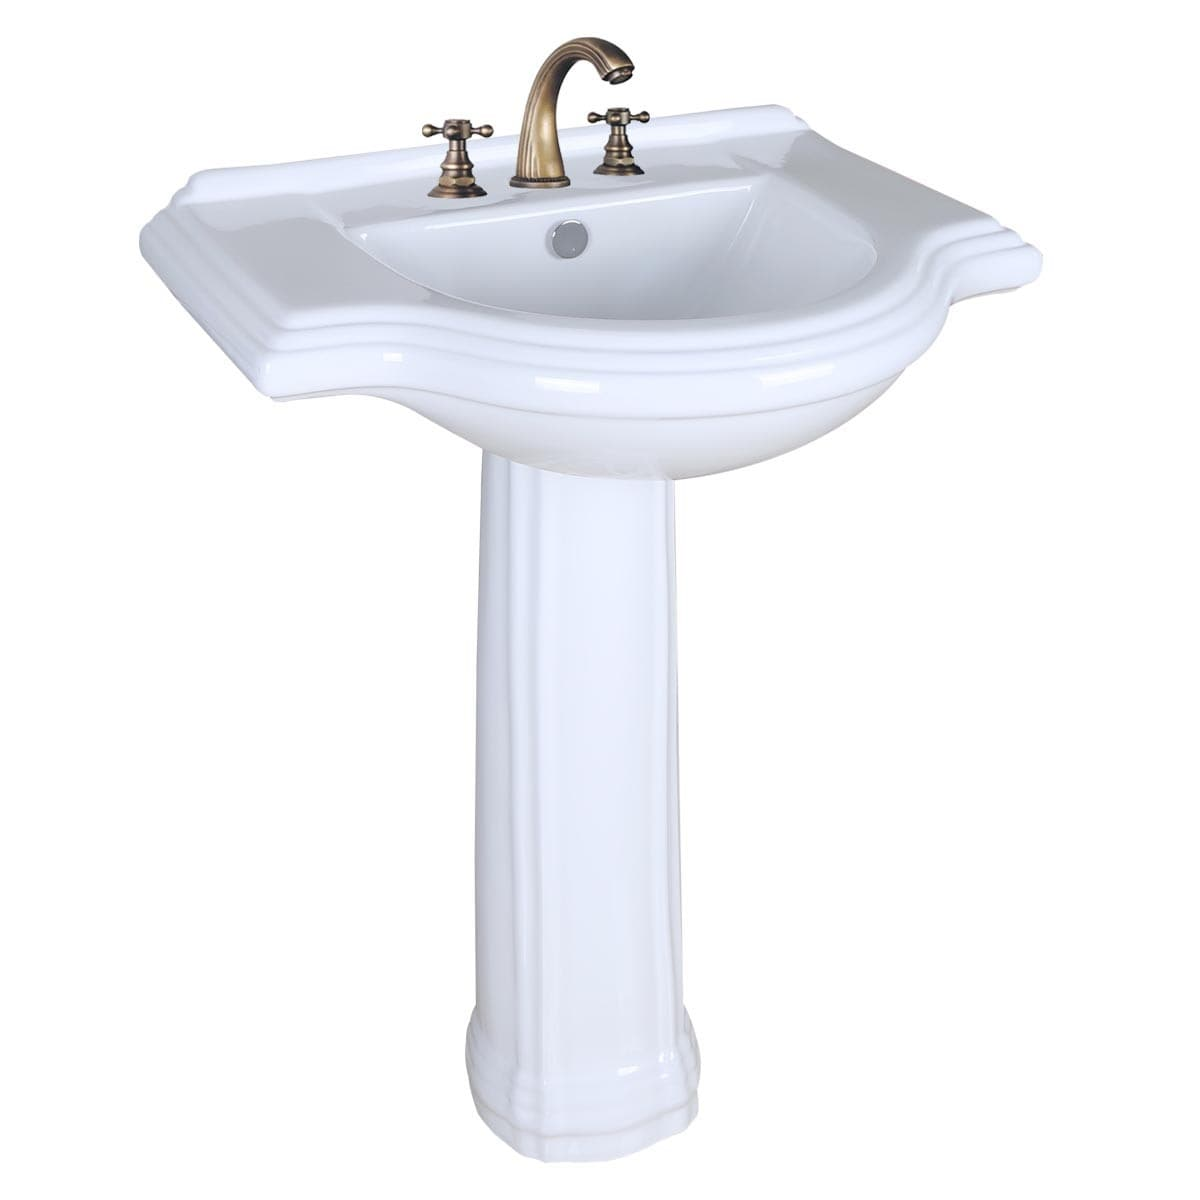 Bathroom Pedestal Sink White China